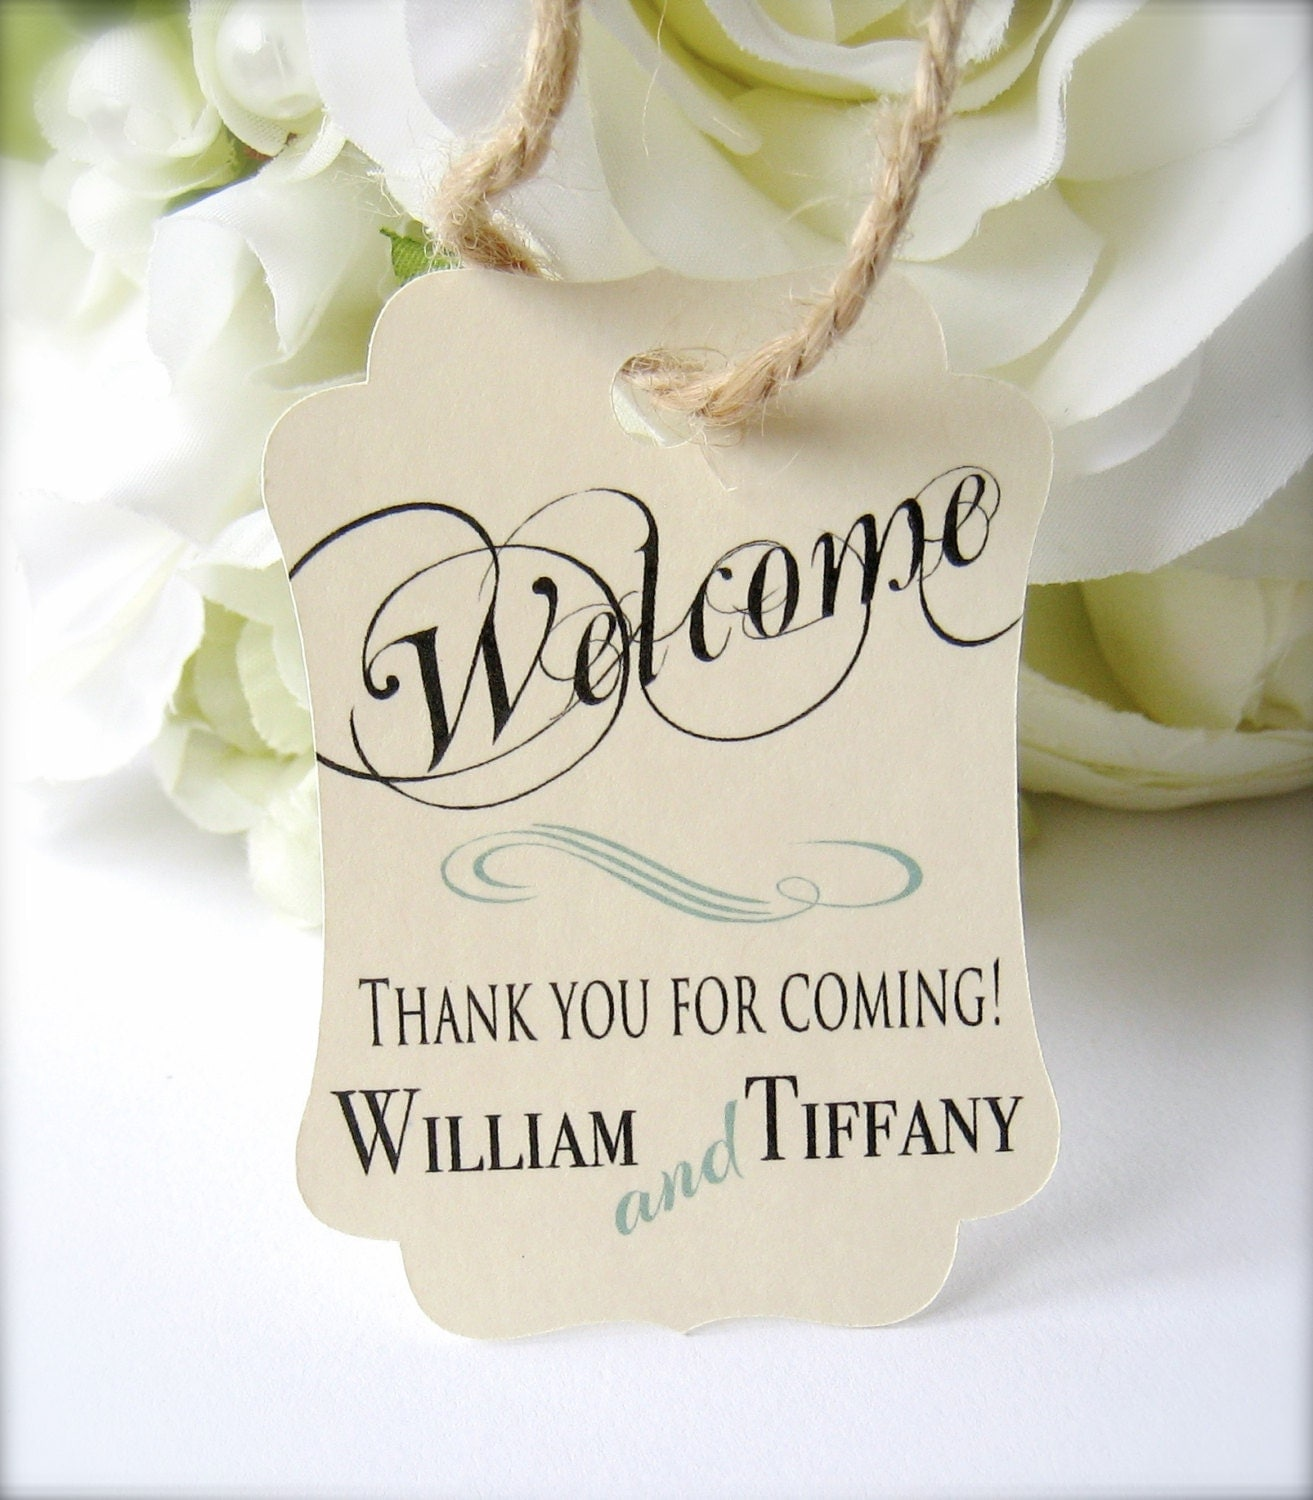 Destination Wedding Gift Tags : Wedding welcome tags favor tags destination wedding tags